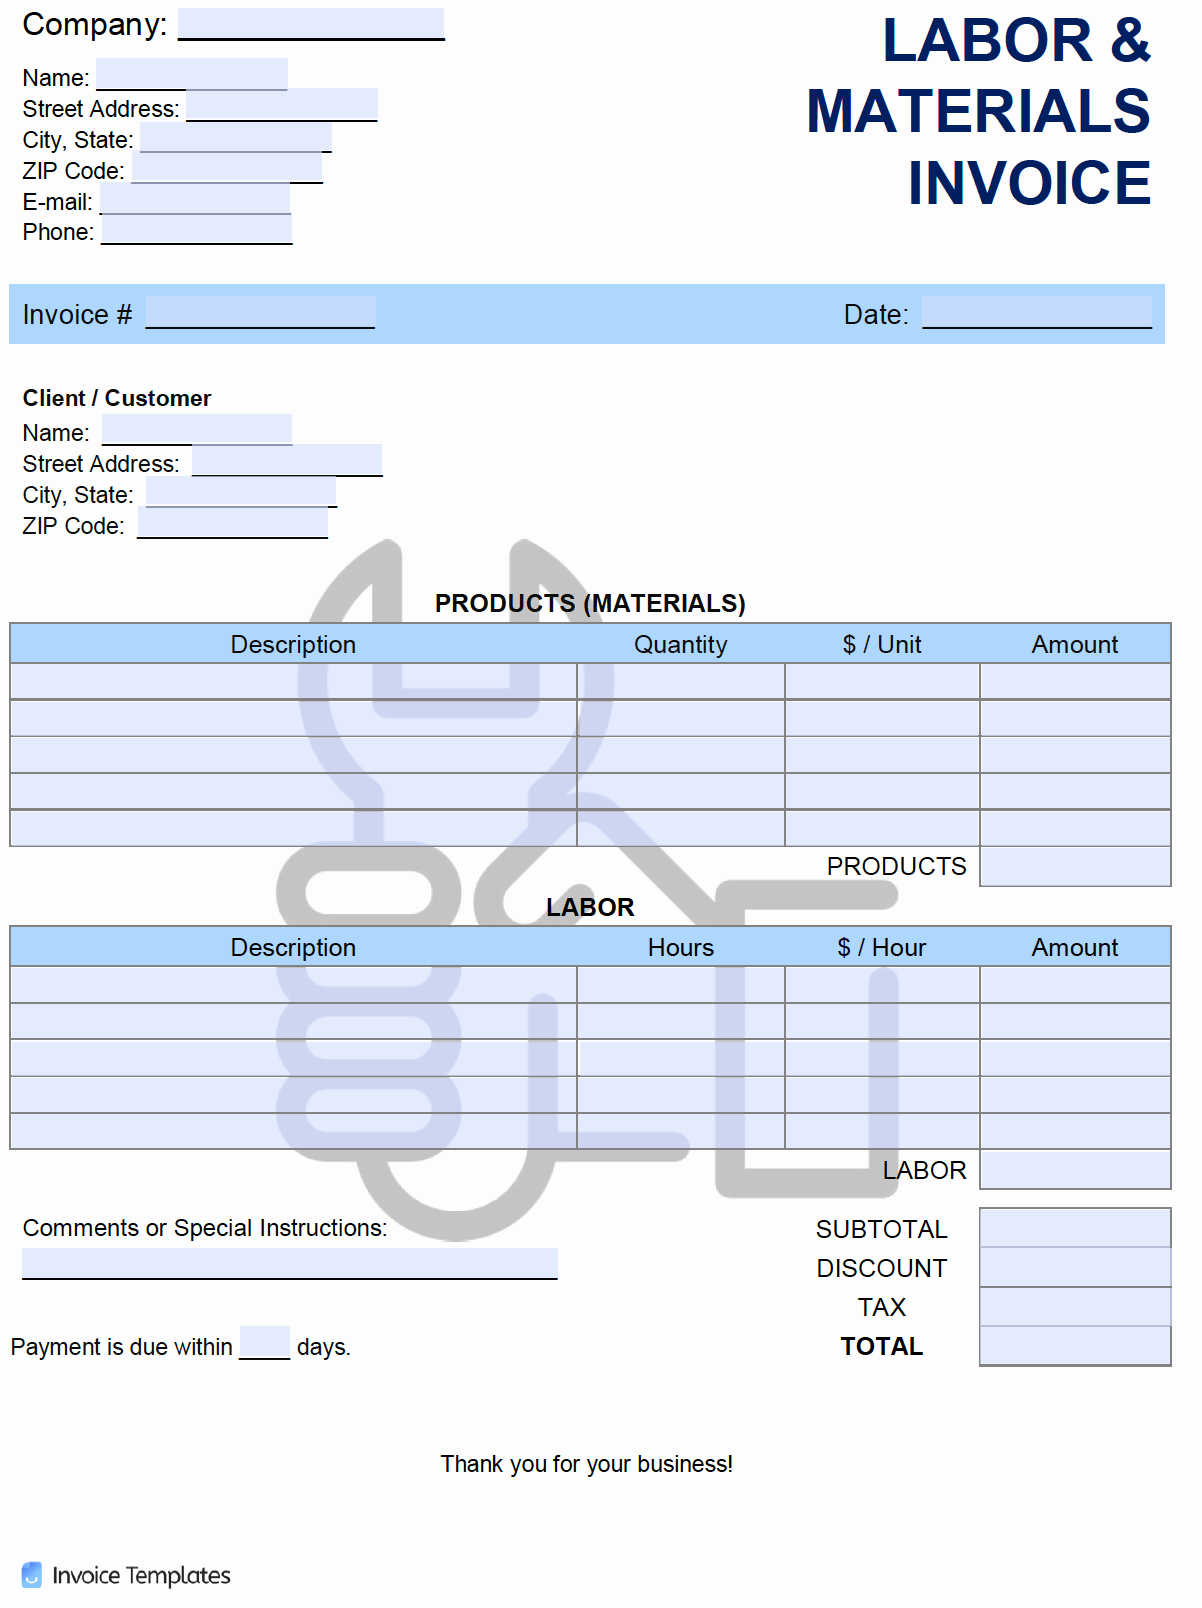 Labor Invoice Template Word Luxury Free Labor and Materials Invoice Template Pdf Word